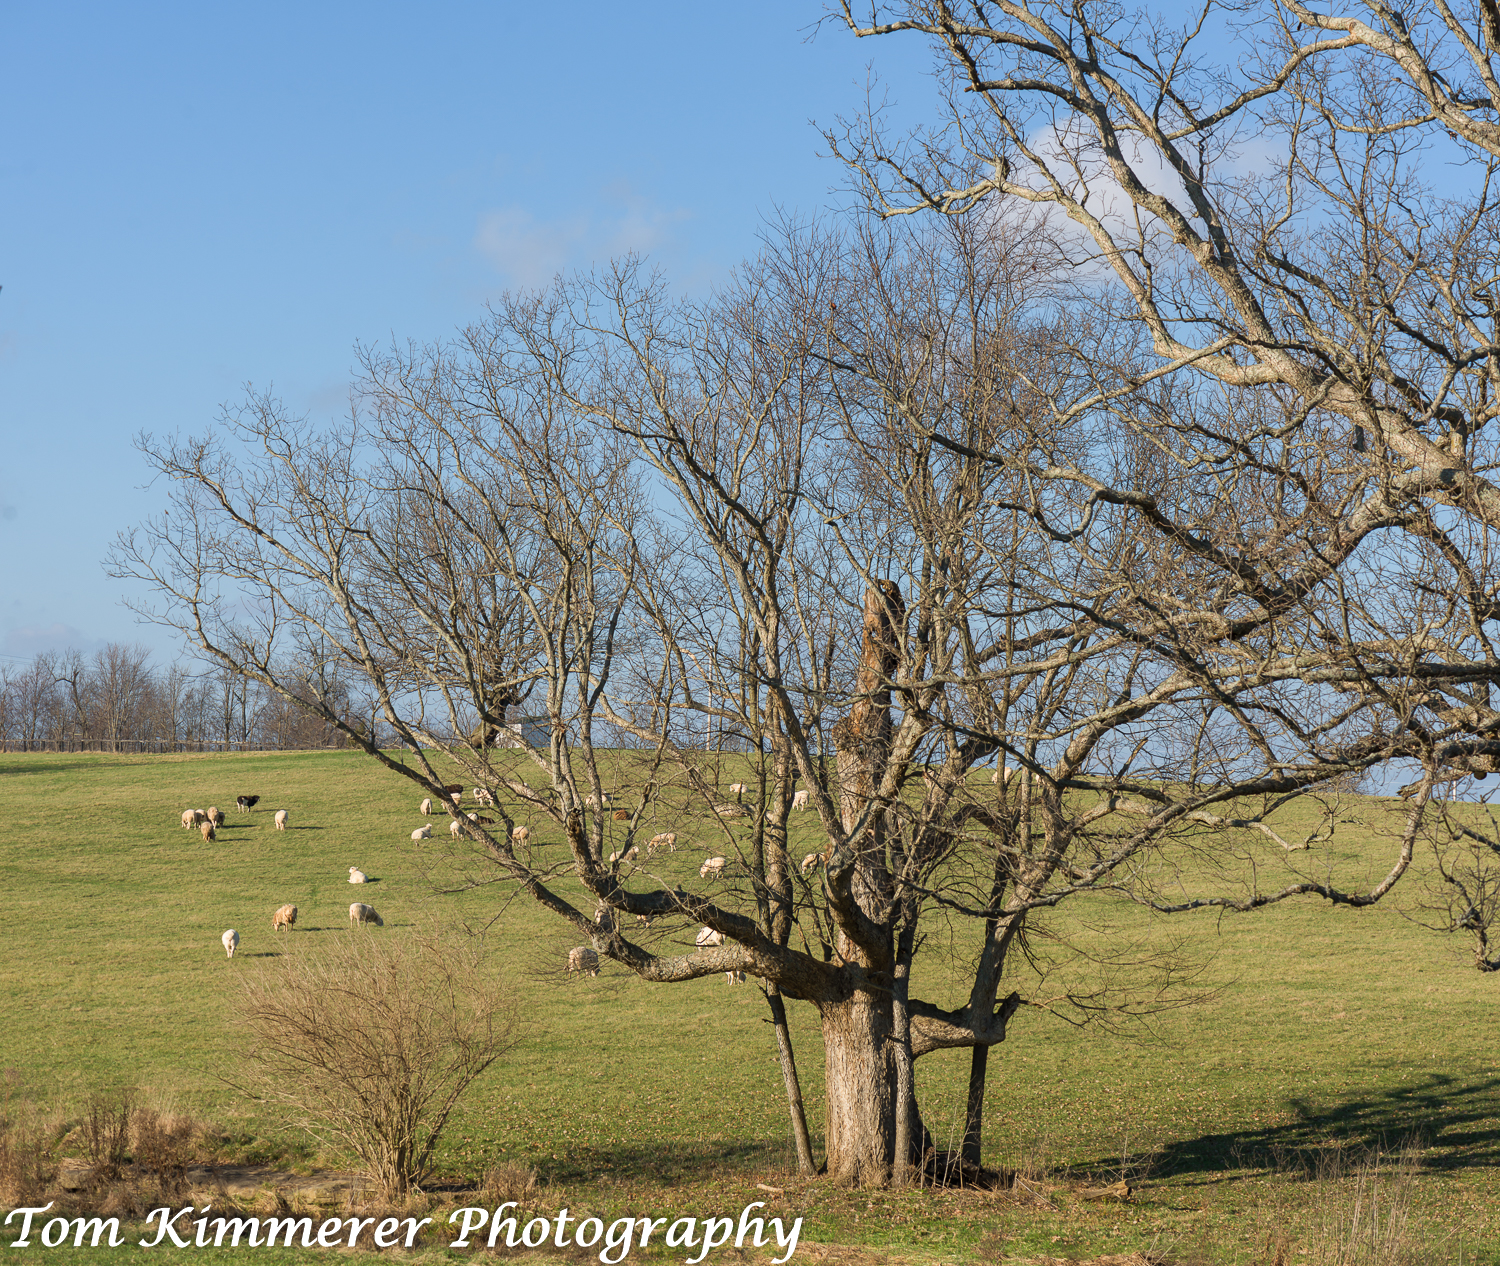 Bur oak and sheep